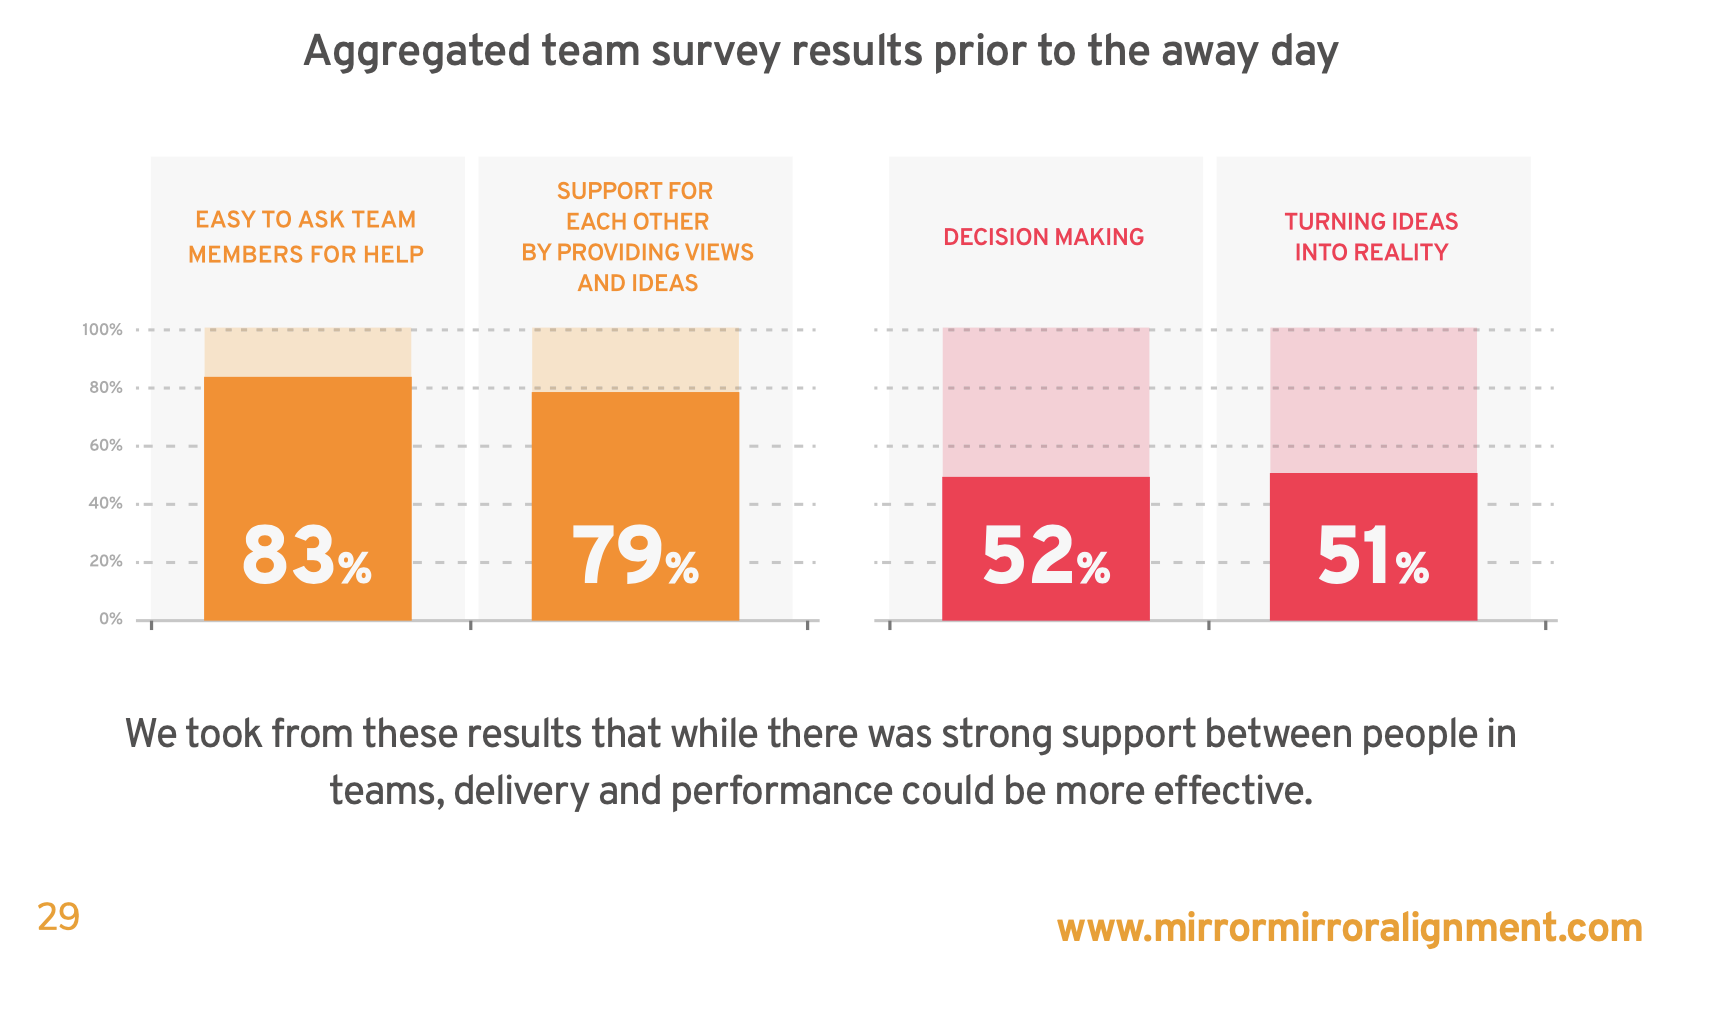 mirrormirror team survey